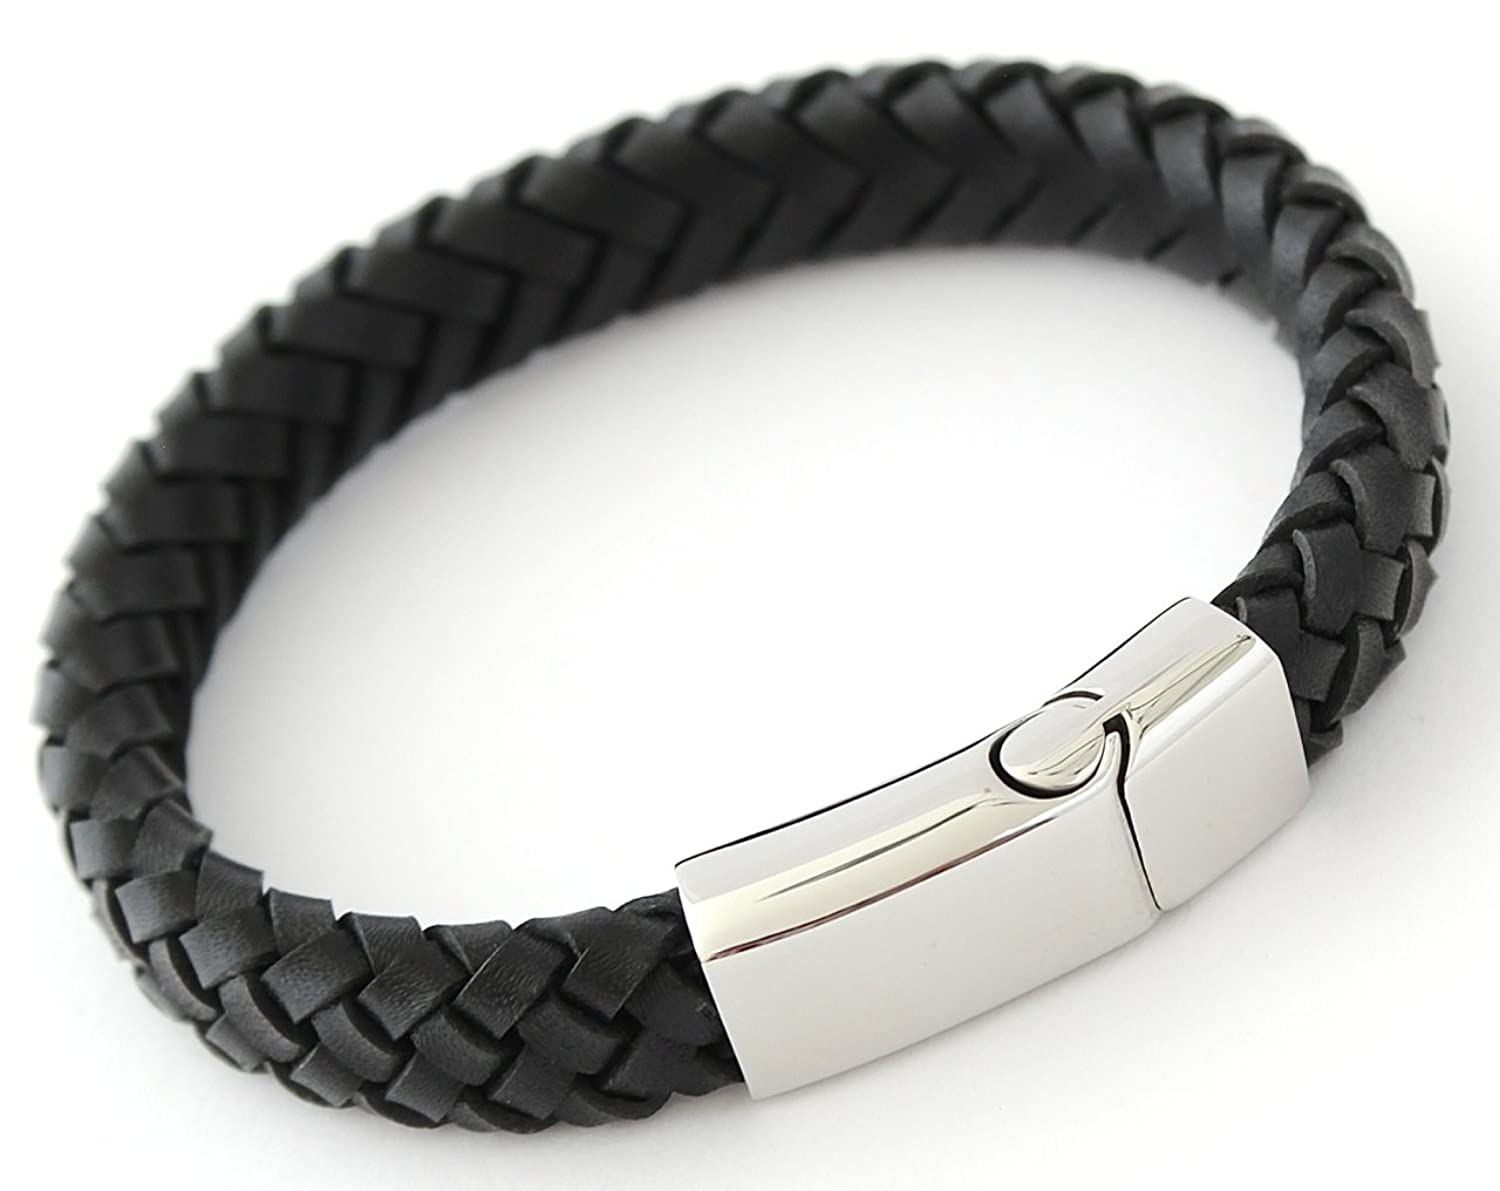 price in zorawar for men product bracelet online black low buy india mens at